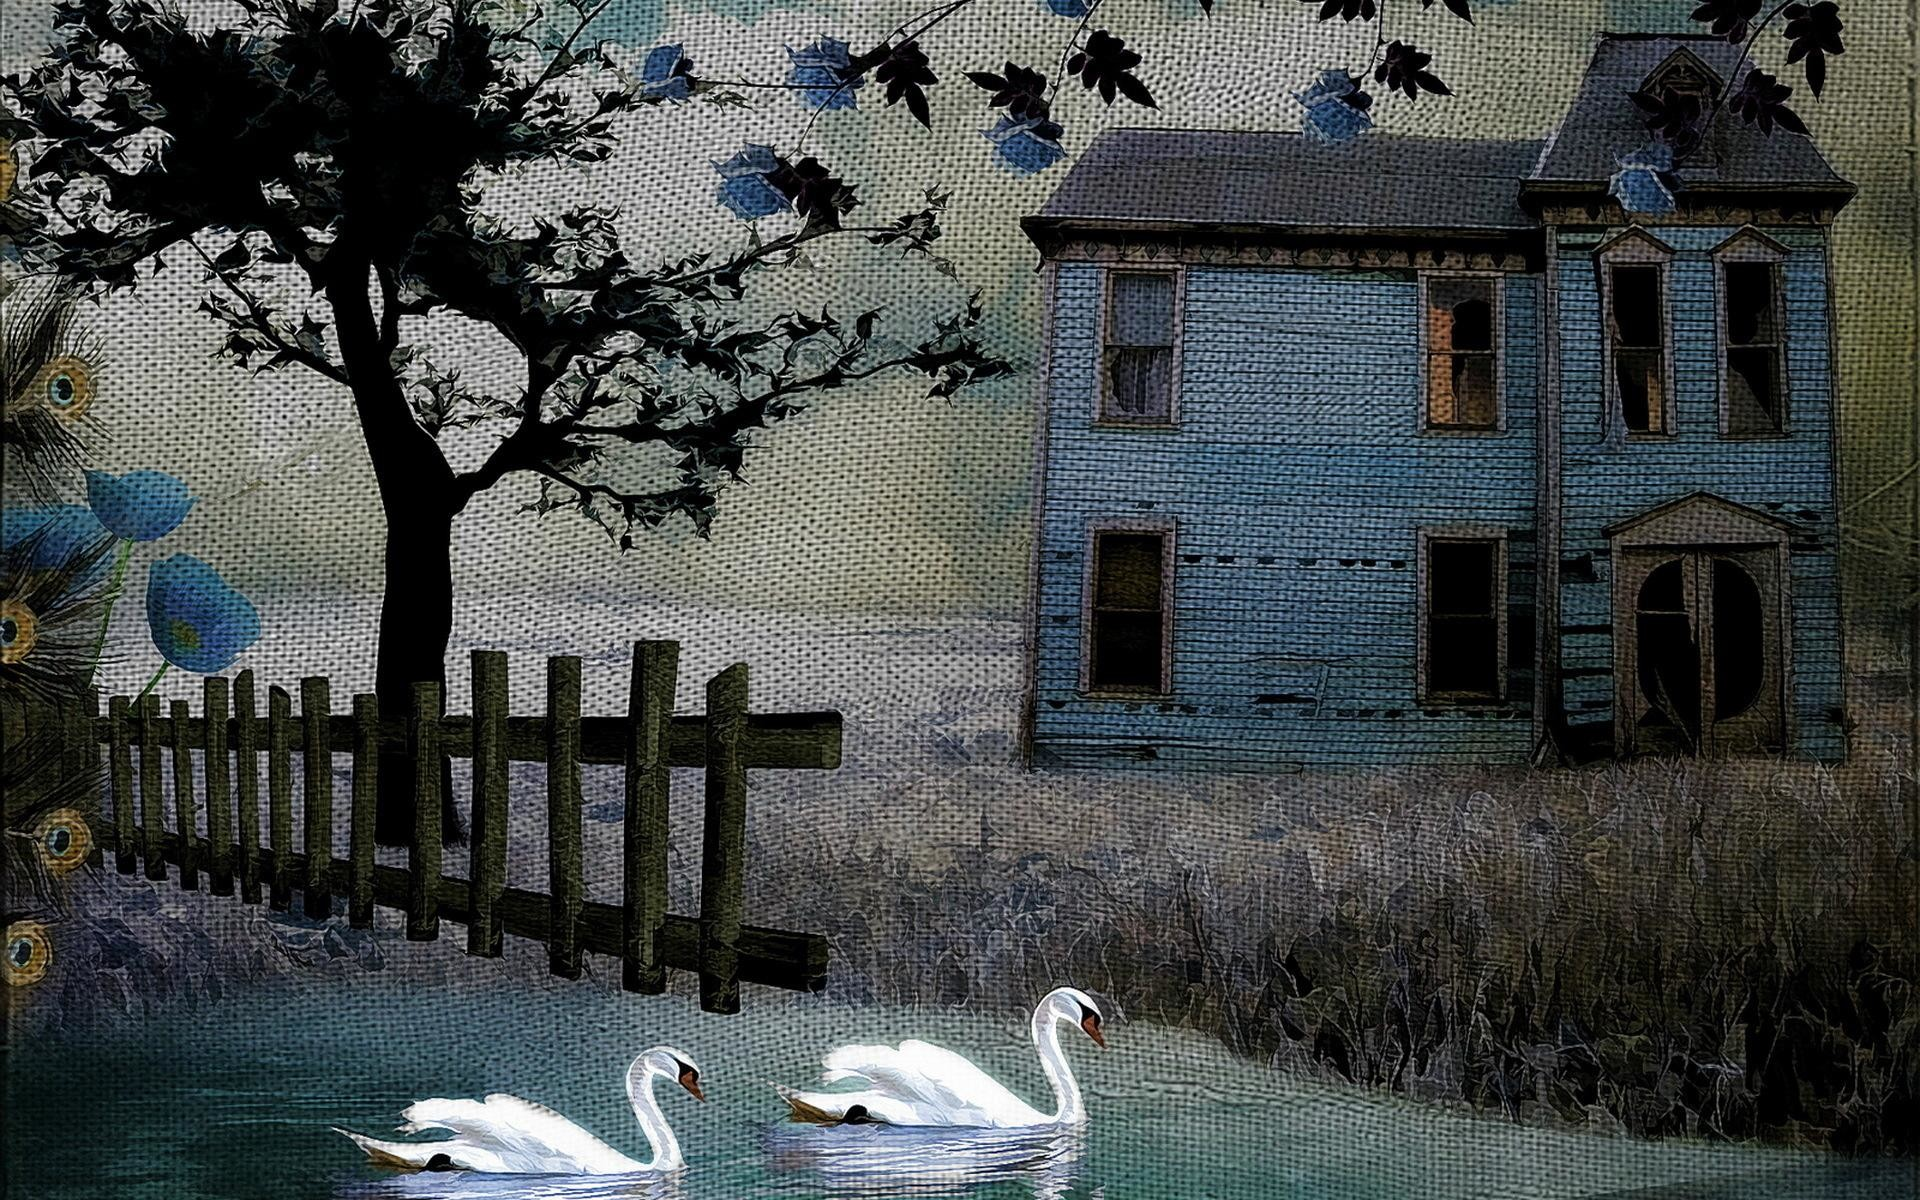 Painting Art Texture Rustic Birds Swan Fence House Buildings Architecture  Trees HD Background